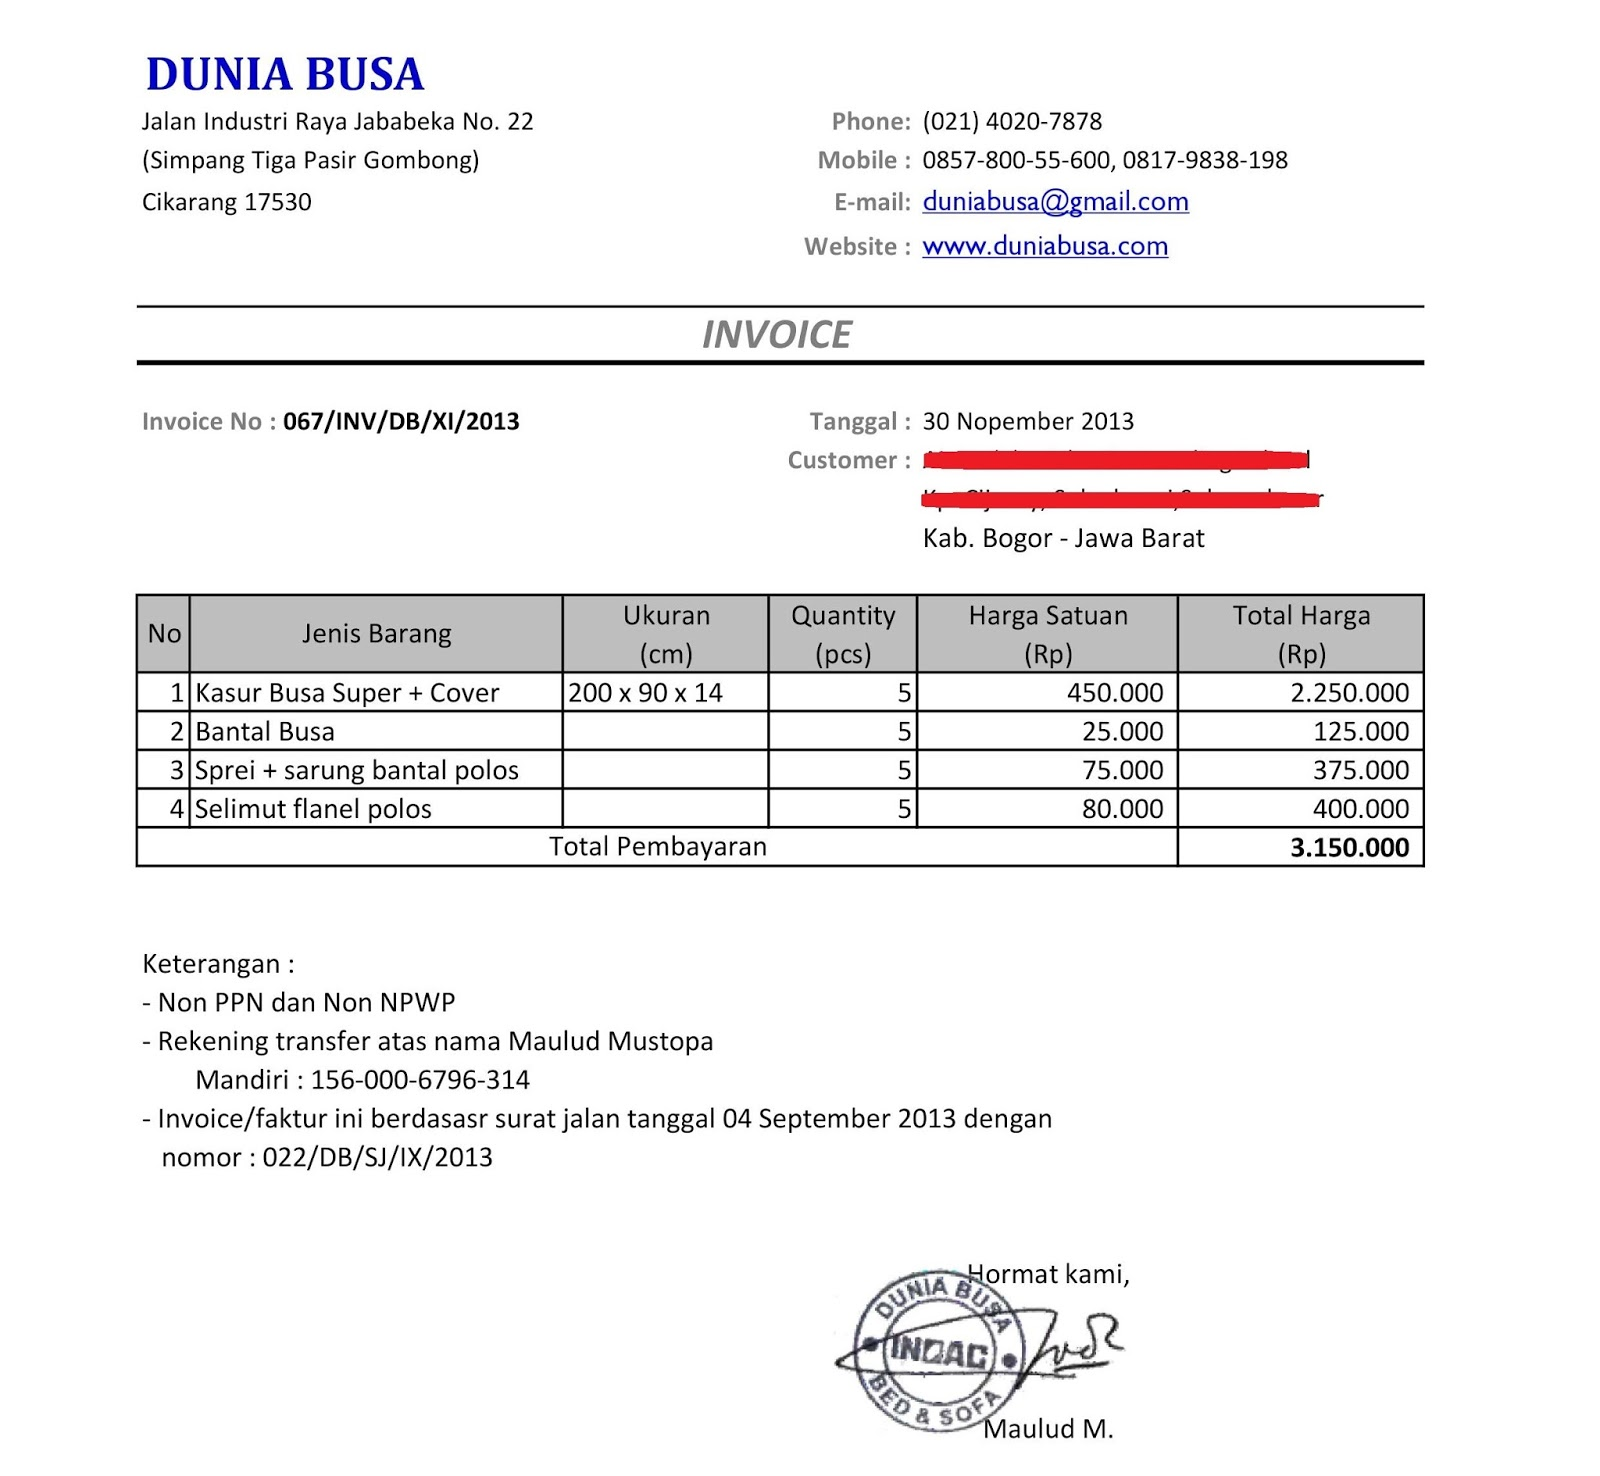 Helpingtohealus  Outstanding Free Invoice Online  Create Invoice Online  Invoice Template  With Luxury Contoh Format Invoice Atau Surat Tagihan  Brankas Arsip  Free Invoice Online With Extraordinary Indesign Invoice Template Also Import Invoices Into Quickbooks In Addition Free Invoice Format In Word And How To Pay Ebay Invoice As Well As How To Pay An Invoice Additionally Editable Invoice Template From Sklepco With Helpingtohealus  Luxury Free Invoice Online  Create Invoice Online  Invoice Template  With Extraordinary Contoh Format Invoice Atau Surat Tagihan  Brankas Arsip  Free Invoice Online And Outstanding Indesign Invoice Template Also Import Invoices Into Quickbooks In Addition Free Invoice Format In Word From Sklepco